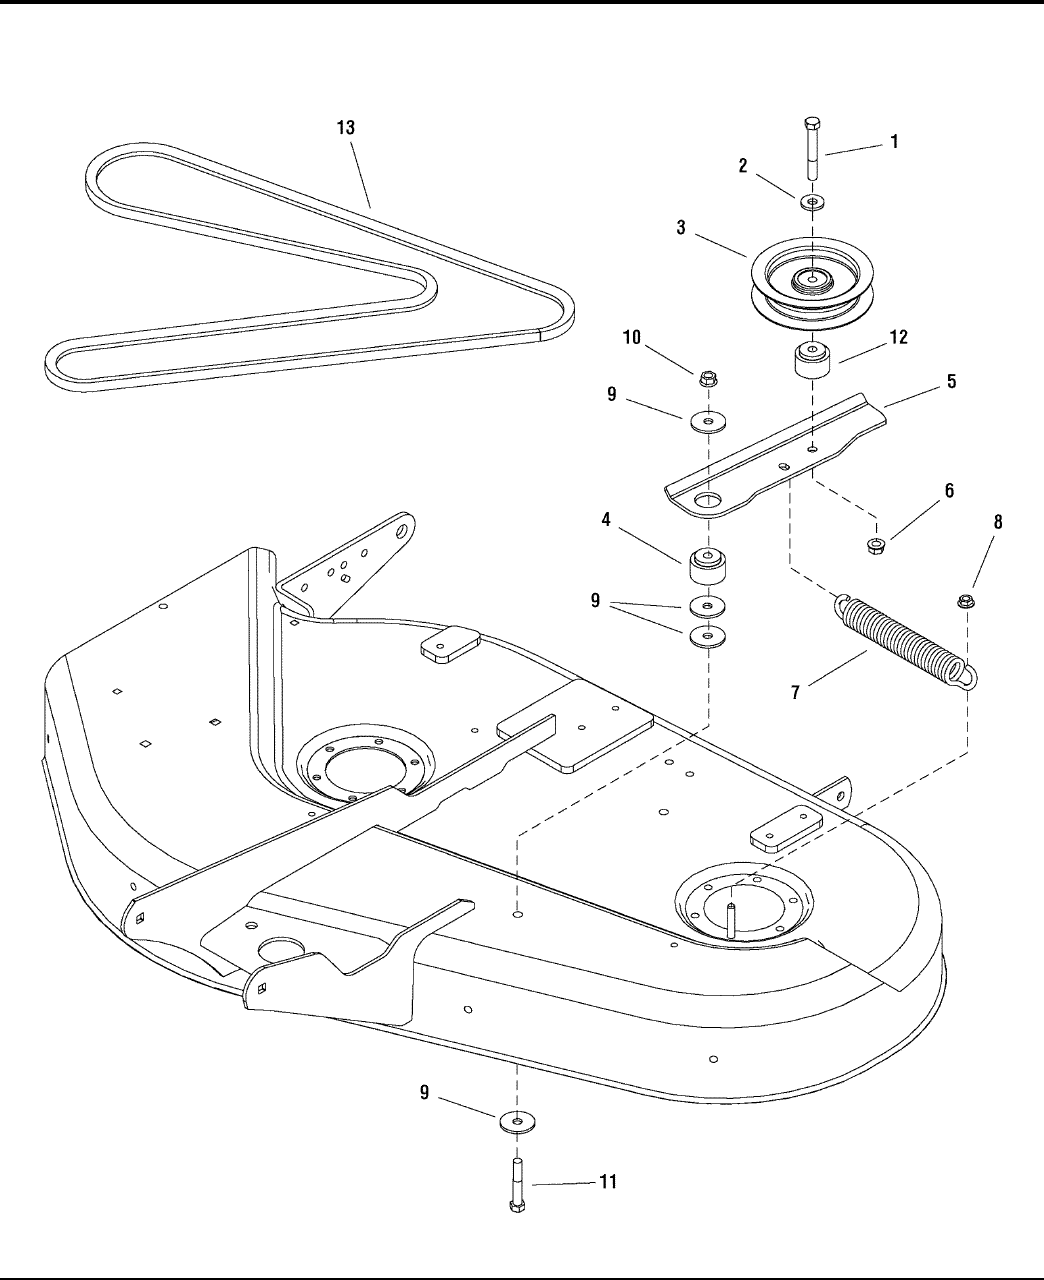 Page 40 of Simplicity Lawn Mower 1600 User Guide